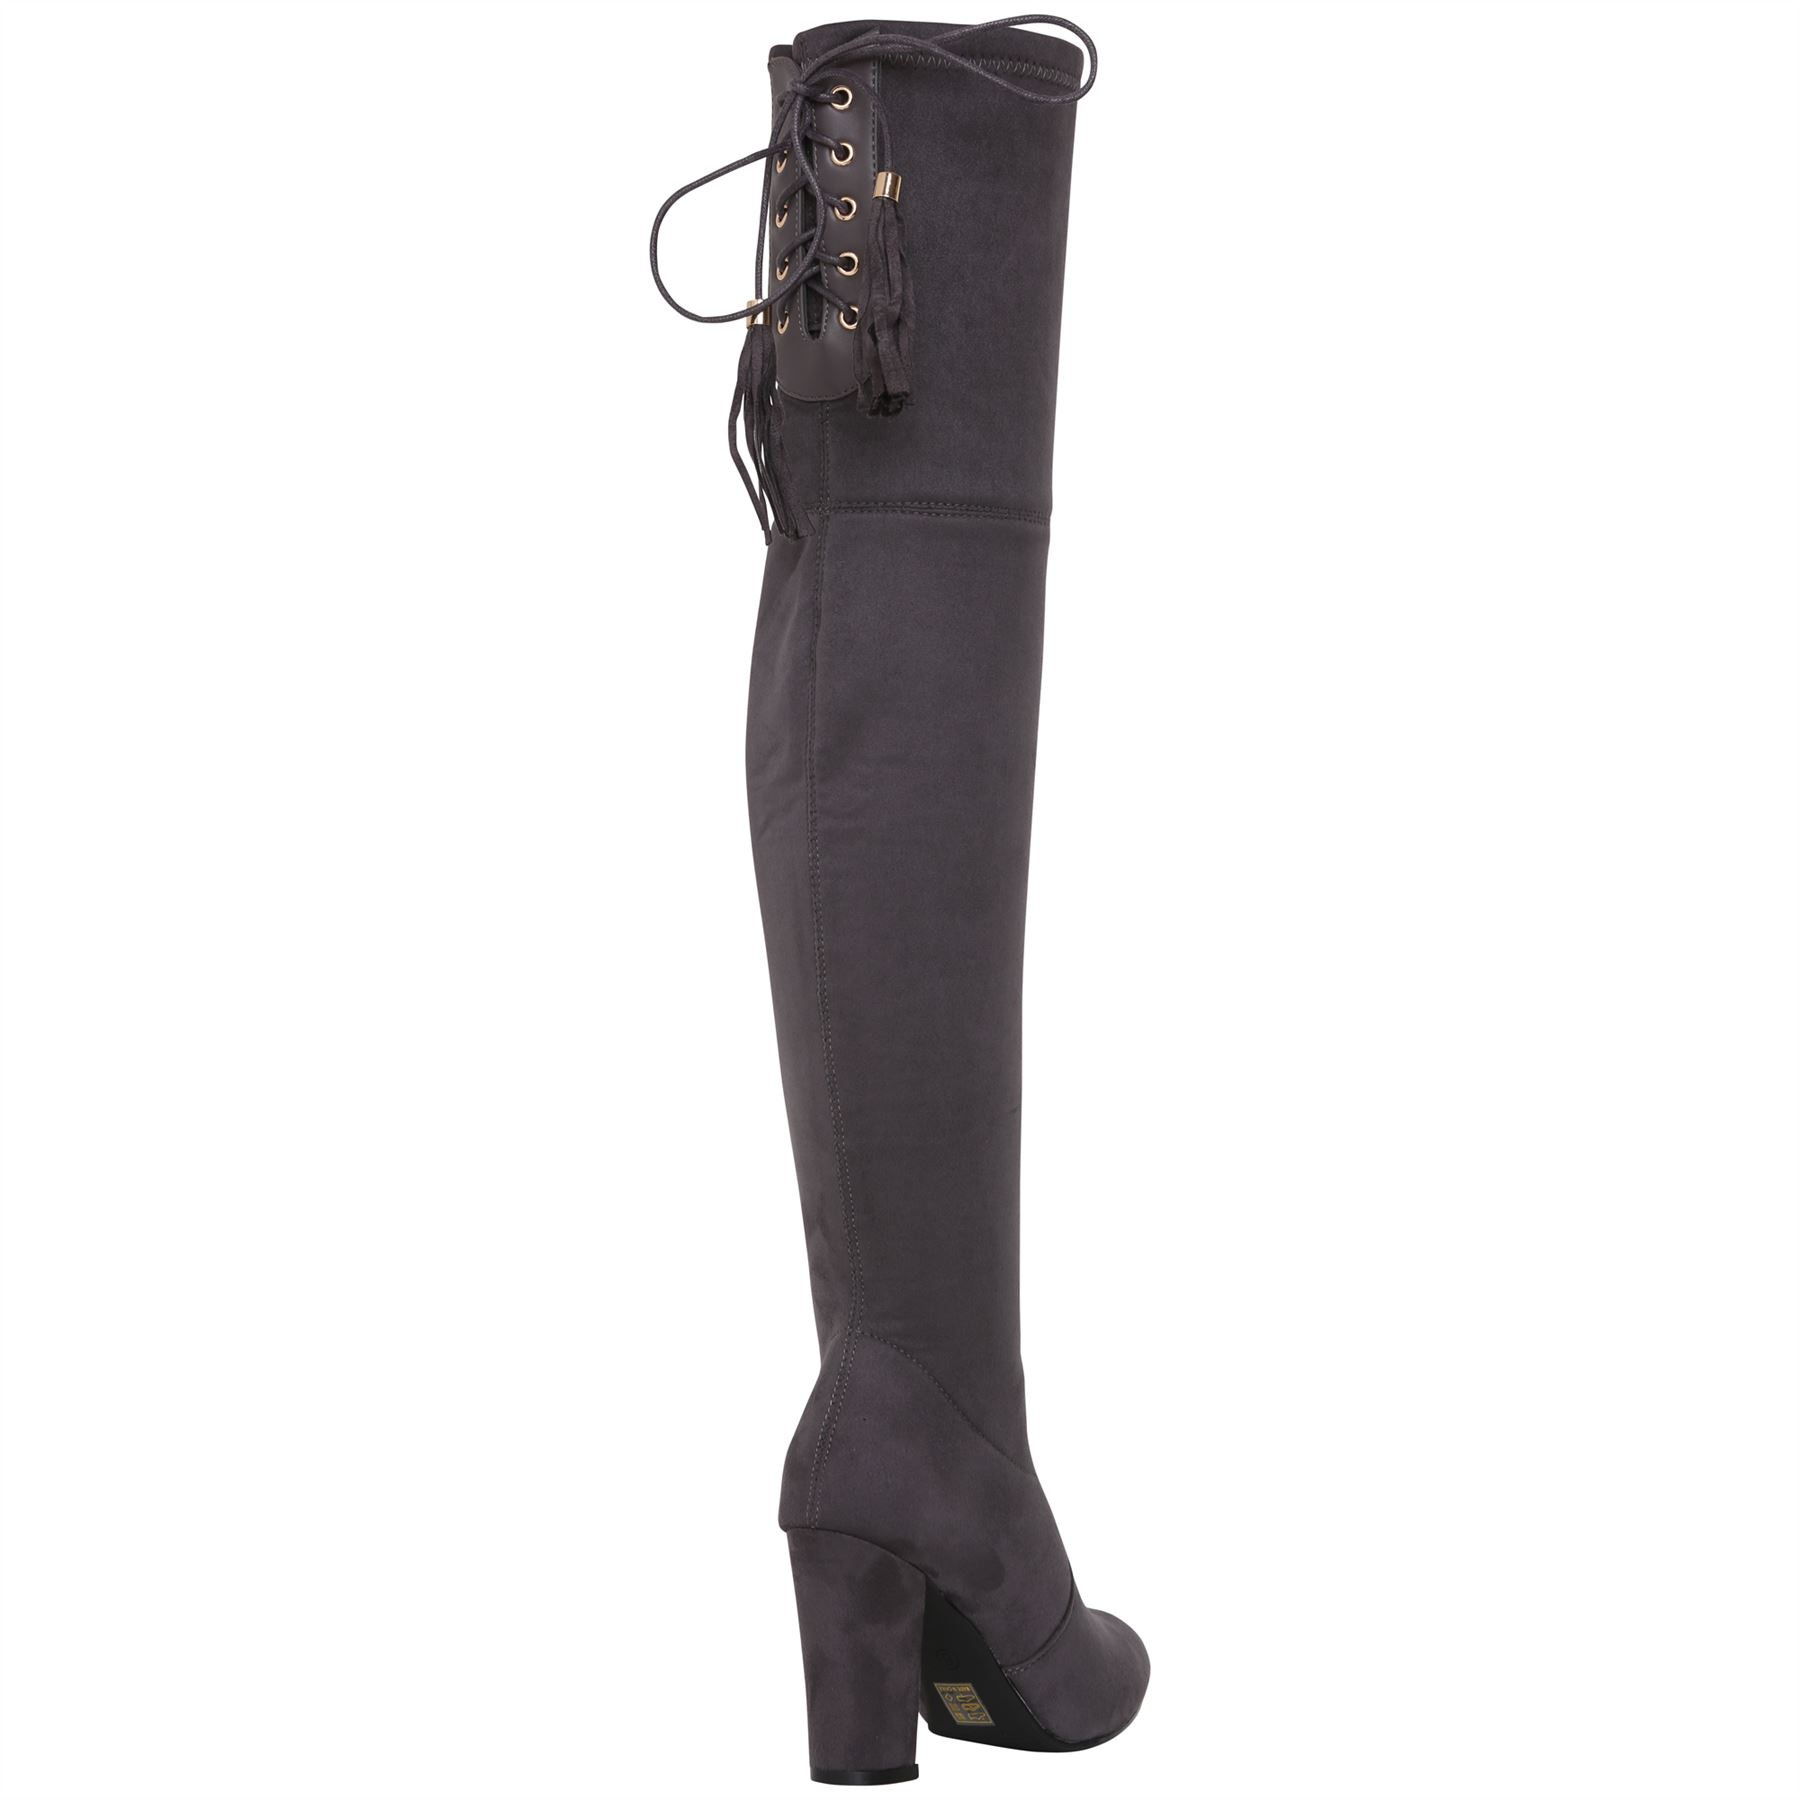 Womens-Over-Knee-High-Boots-Ladies-Low-Block-Heel-Riding-Stretch-Winter-Shoes miniatura 10